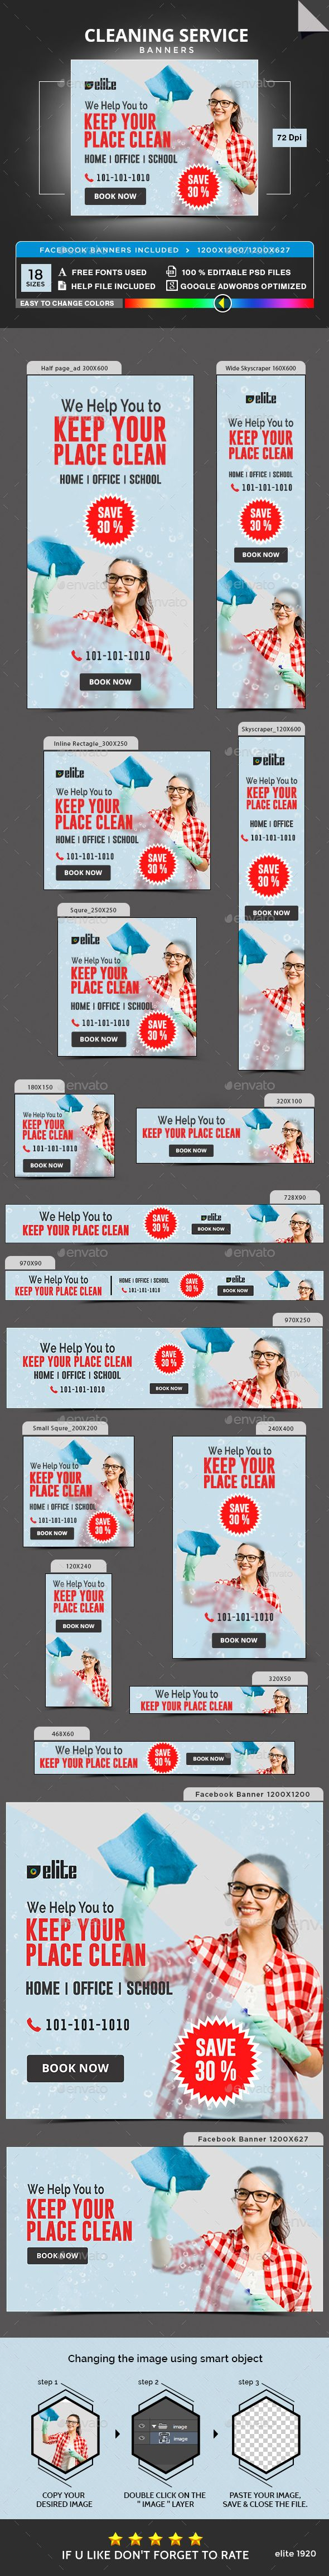 Cleaning Service Banners Template PSD